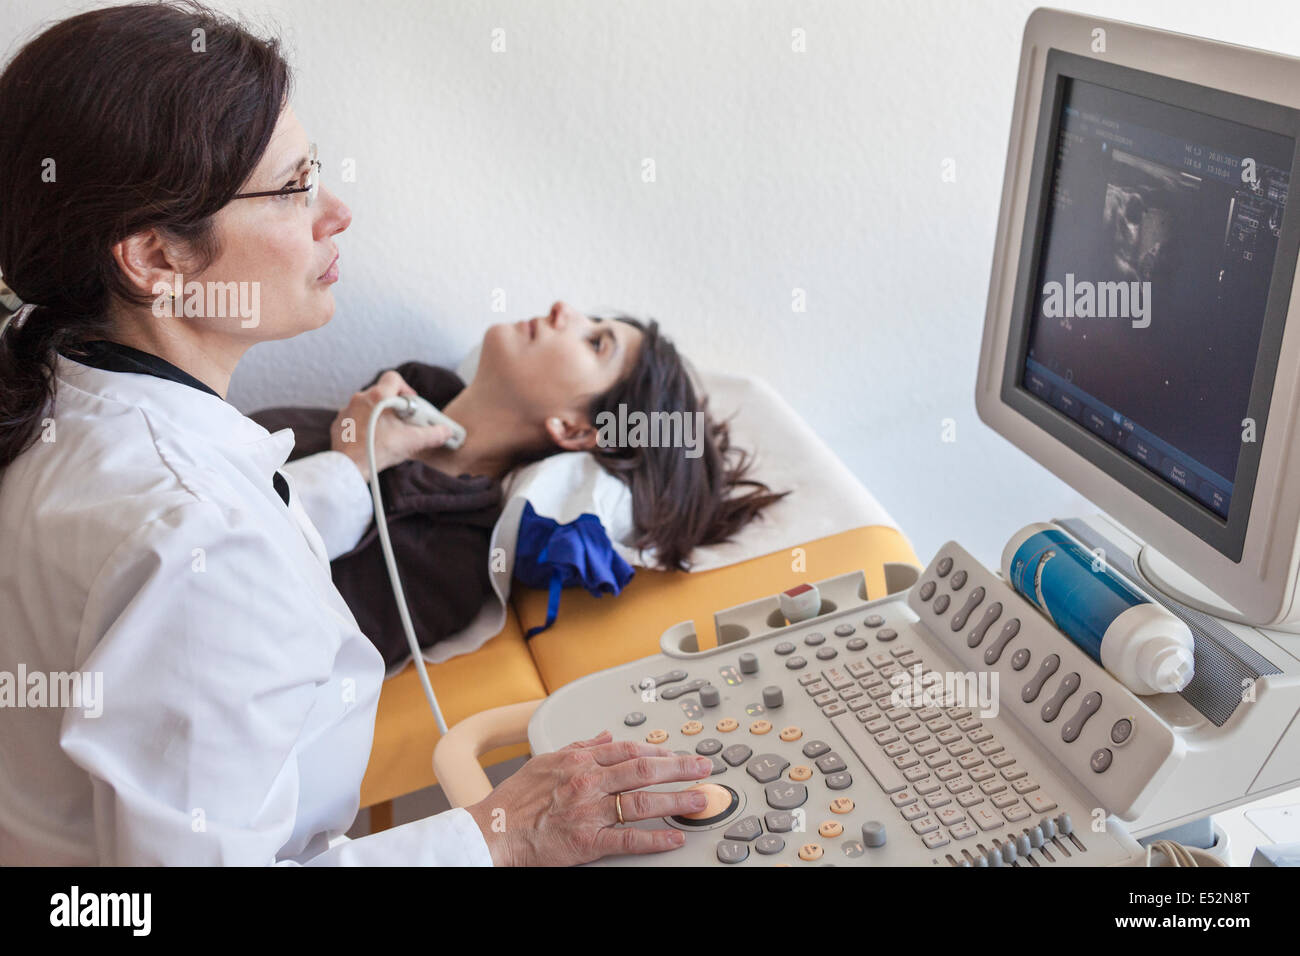 Doctor performs ultrasound on the thyroid gland - Stock Image